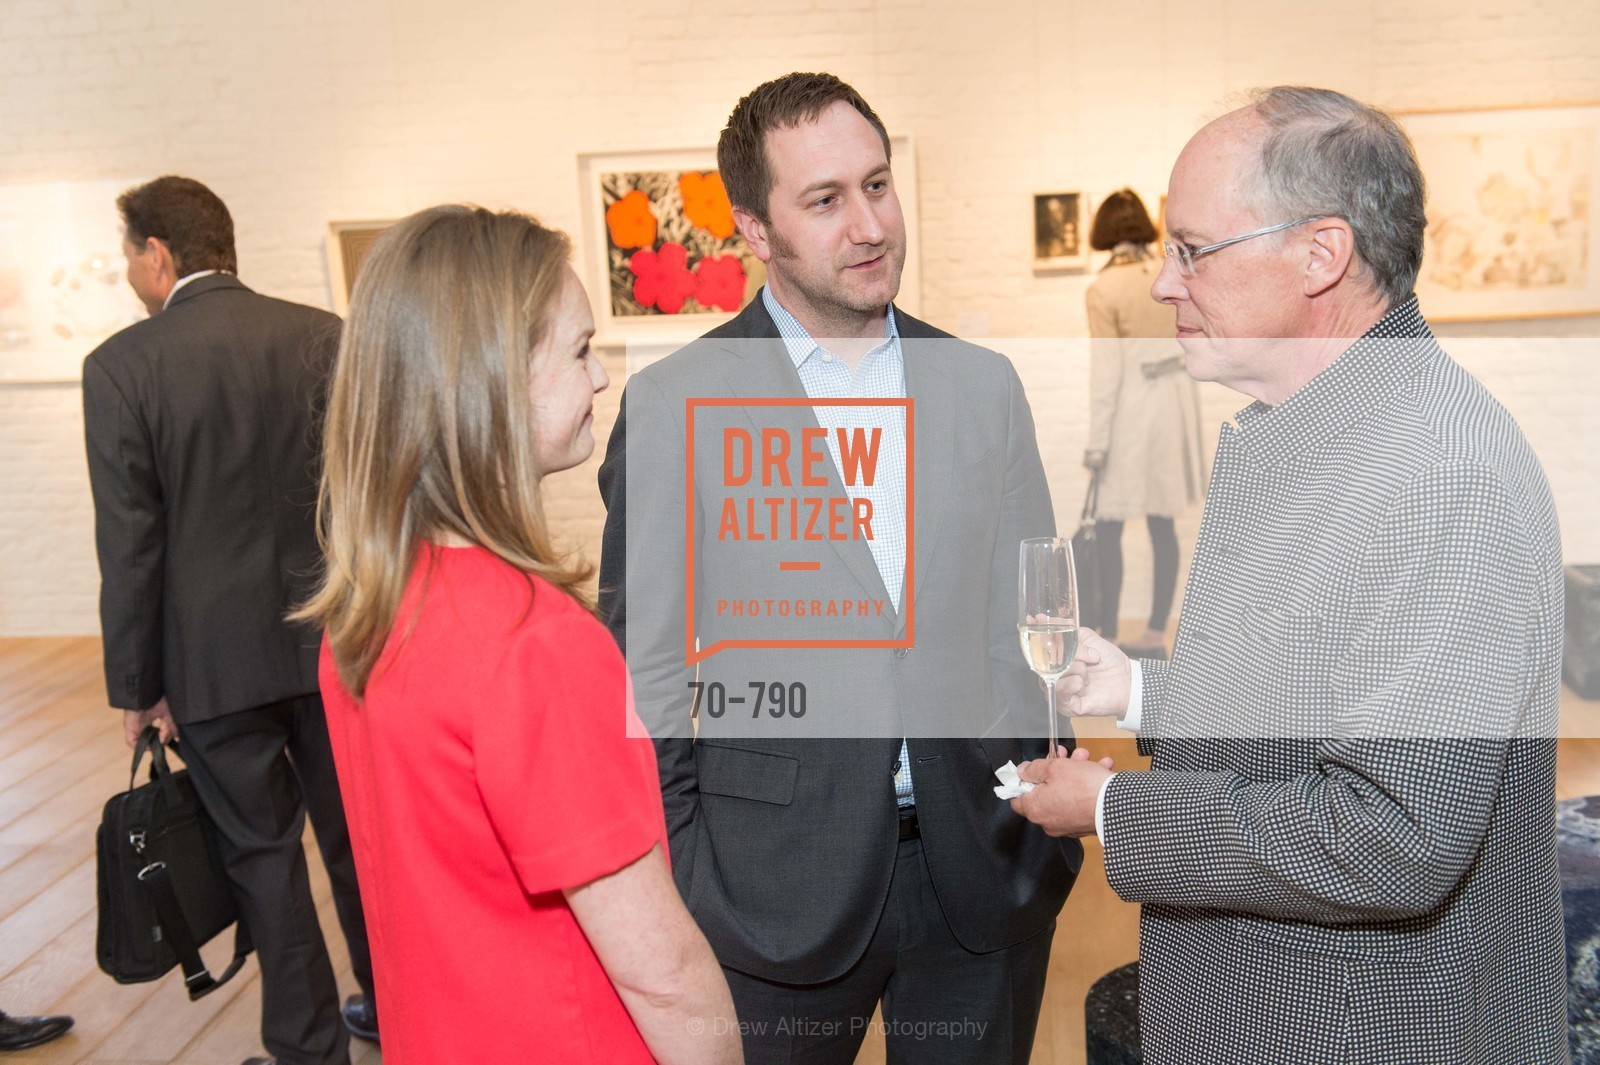 Charlie Adamski, Jonathan Laib, Charles Desmarais, Post War and Contemporary Preview at HEDGE GALLERY, US, April 16th, 2015,Drew Altizer, Drew Altizer Photography, full-service agency, private events, San Francisco photographer, photographer california